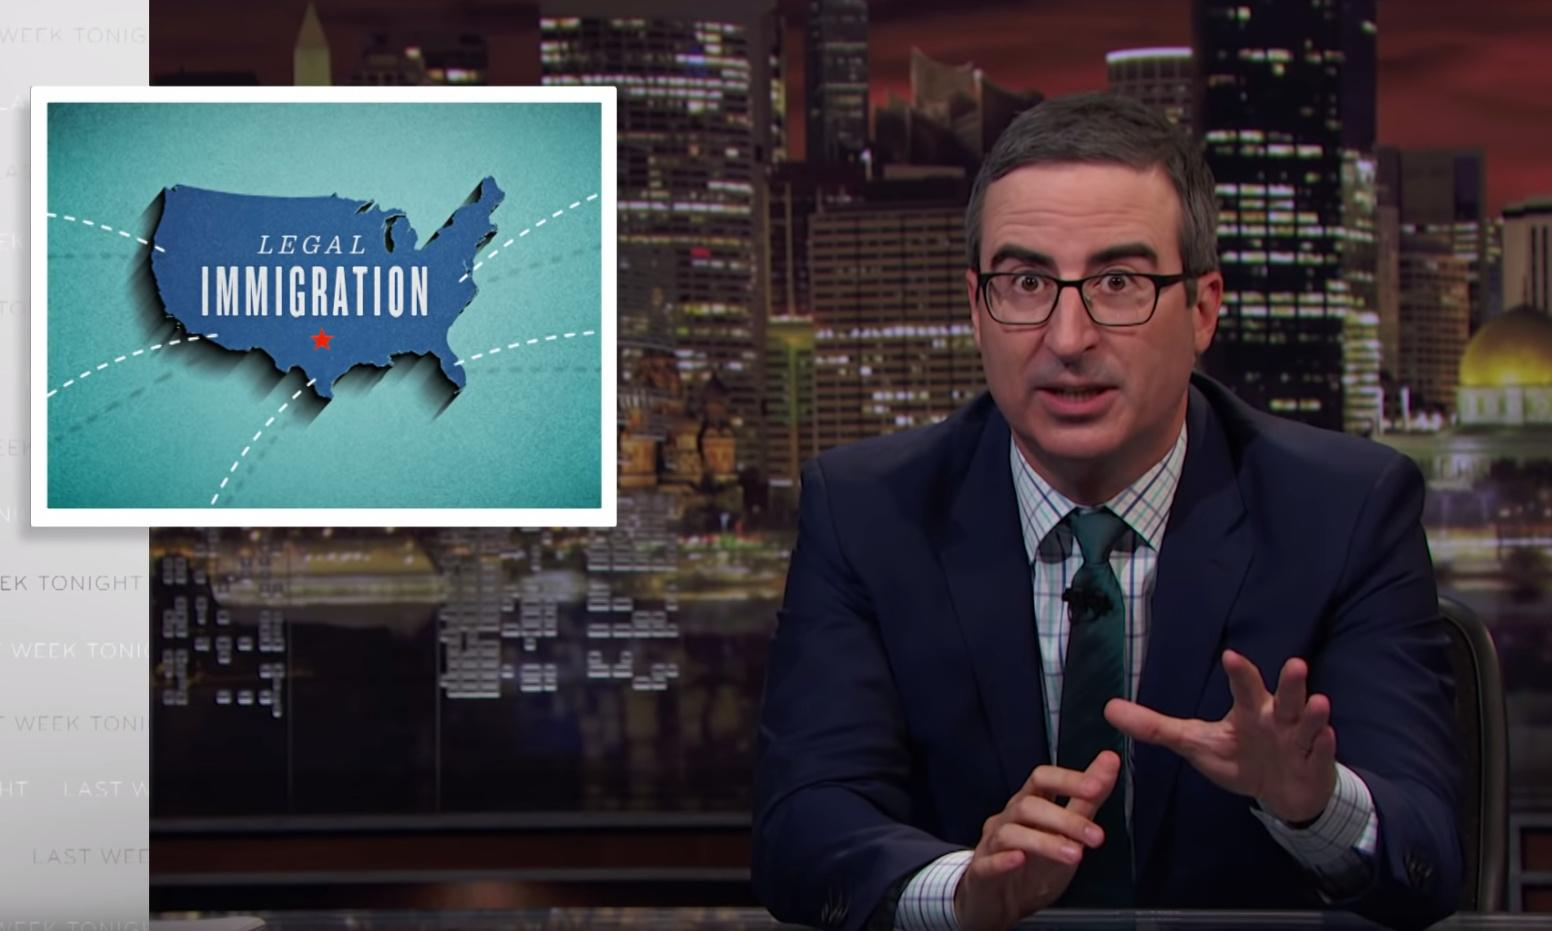 John Oliver on immigration: for many there is no way to come in the 'right way'